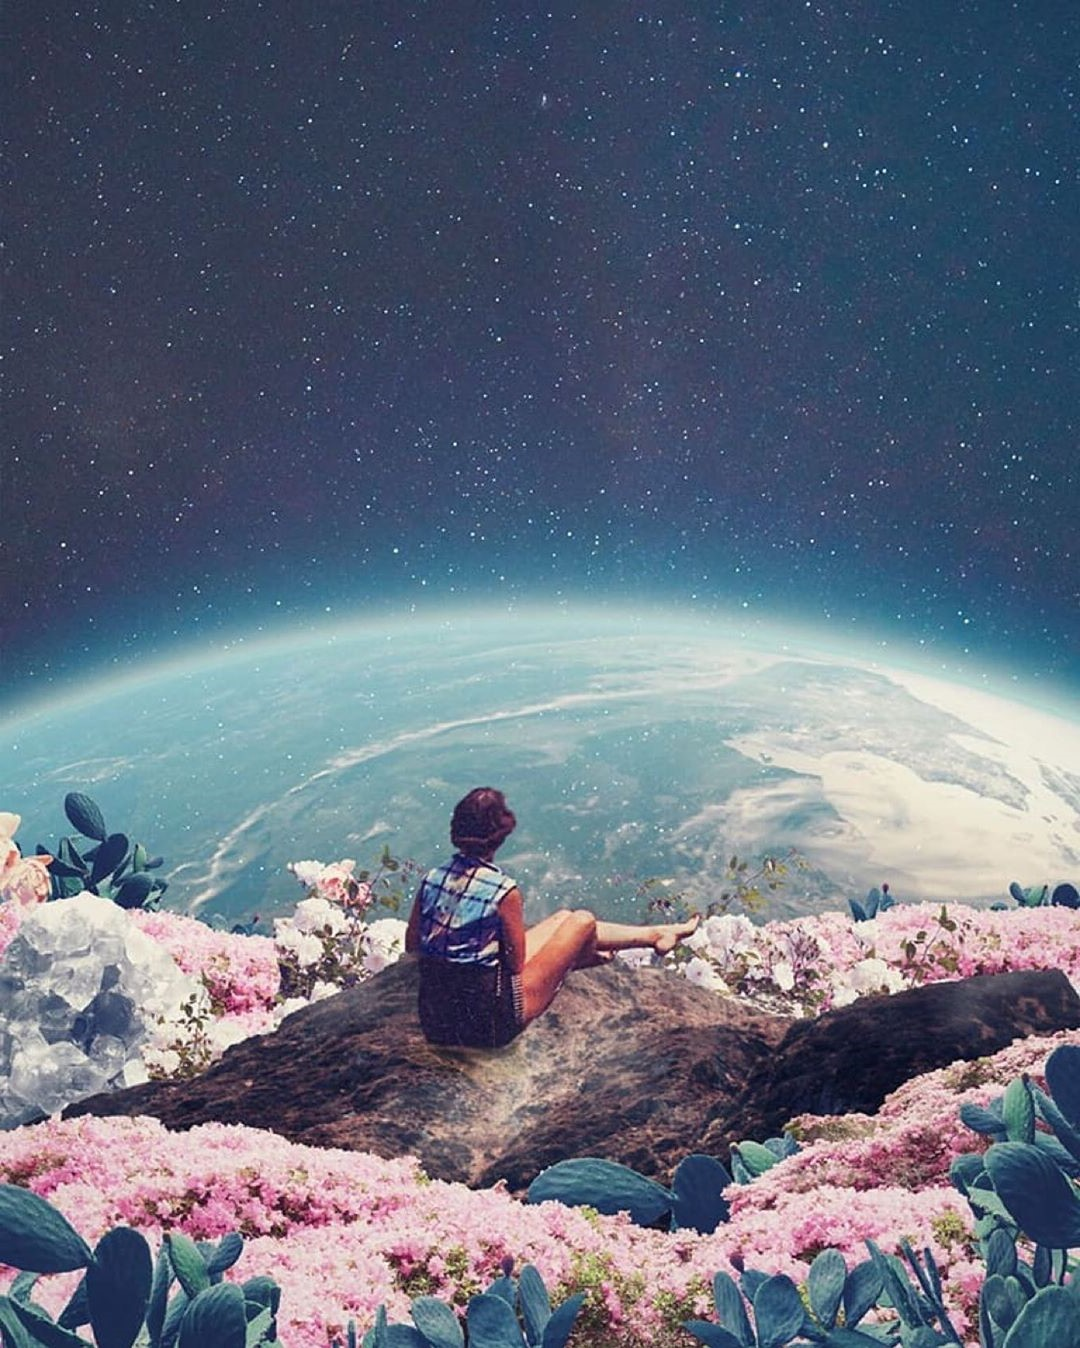 7. Aesthetic Serenity | 8 Insanely Psychedelic Must-Follow Instagram Artists | Brain Berries